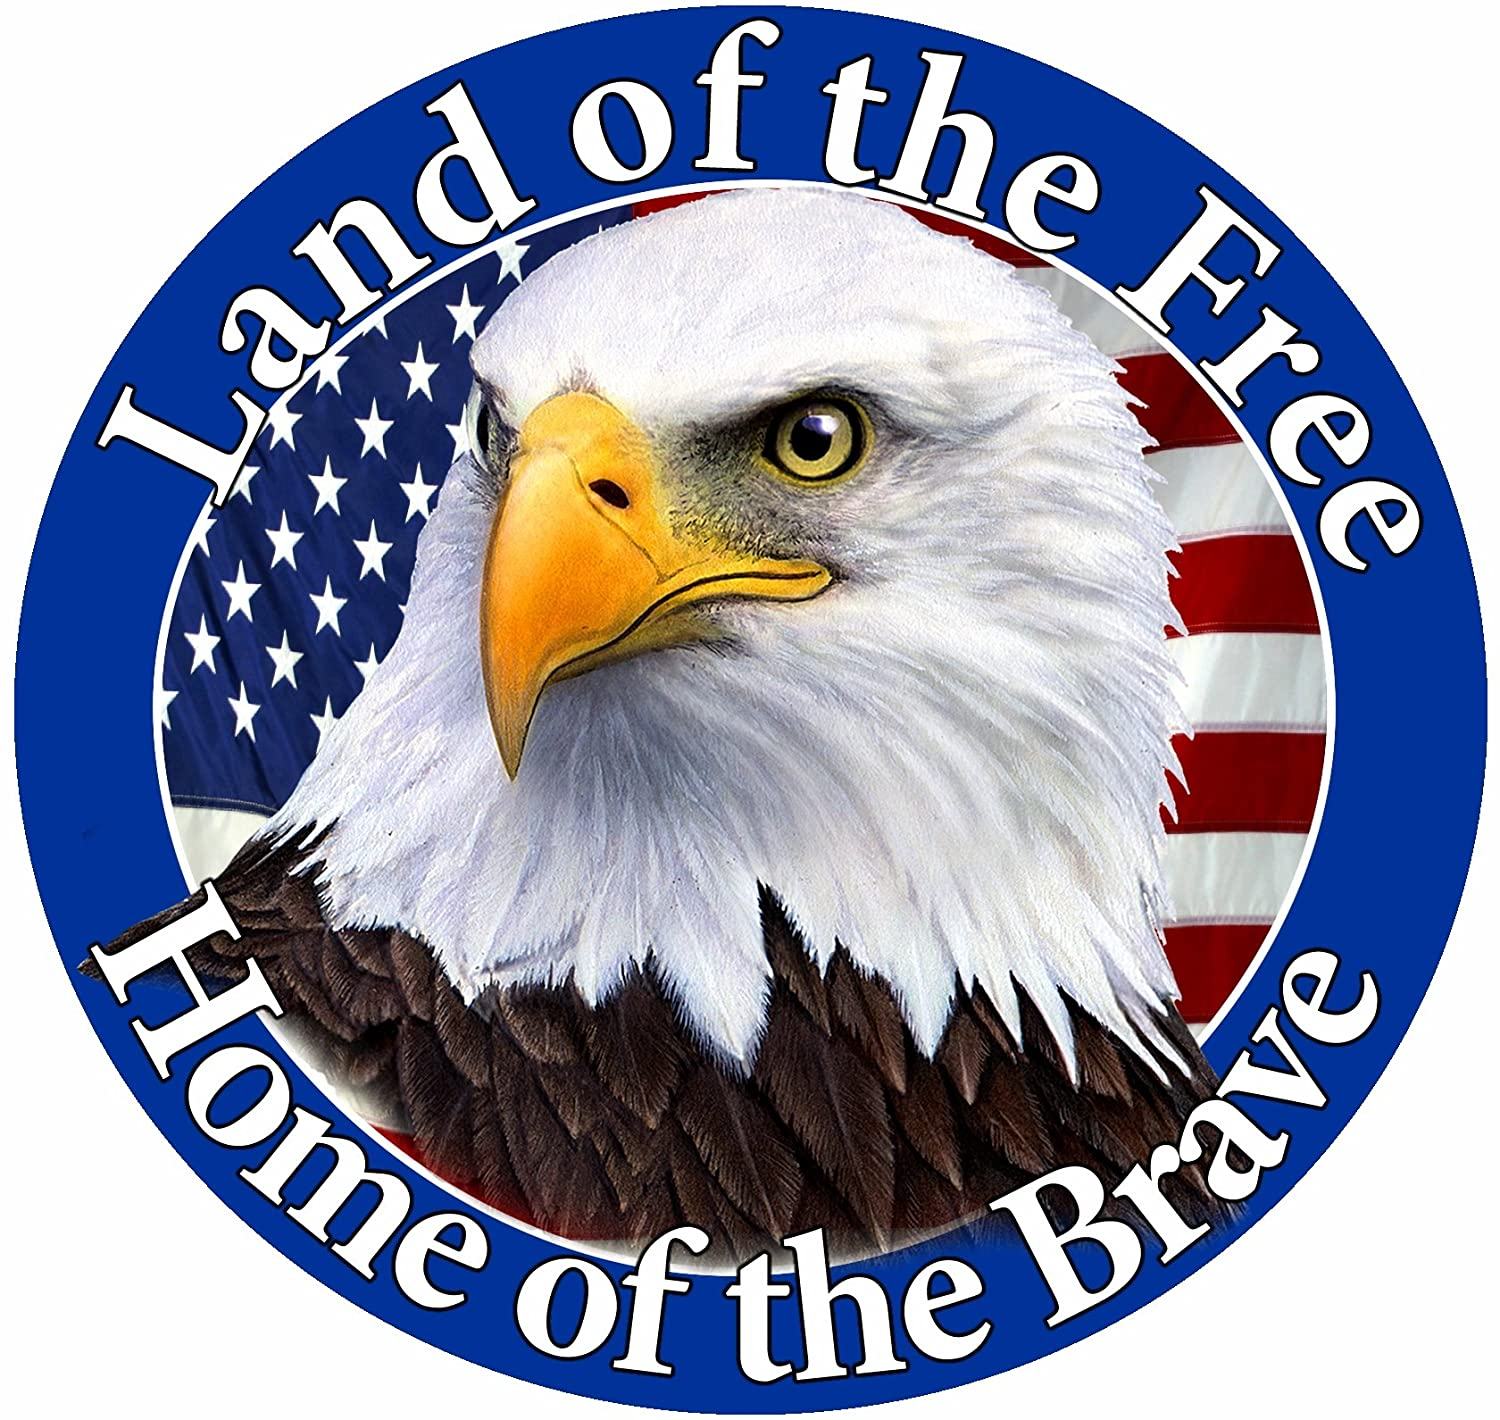 """Land Of The Free Home Of The Brave"" Car Magnet With Realistic Looking Eagle Photograph In The Center Covered In UV Gloss For Weather and Fading Protection Circle Shaped Magnet Measures 5.25 Inches Diameter"